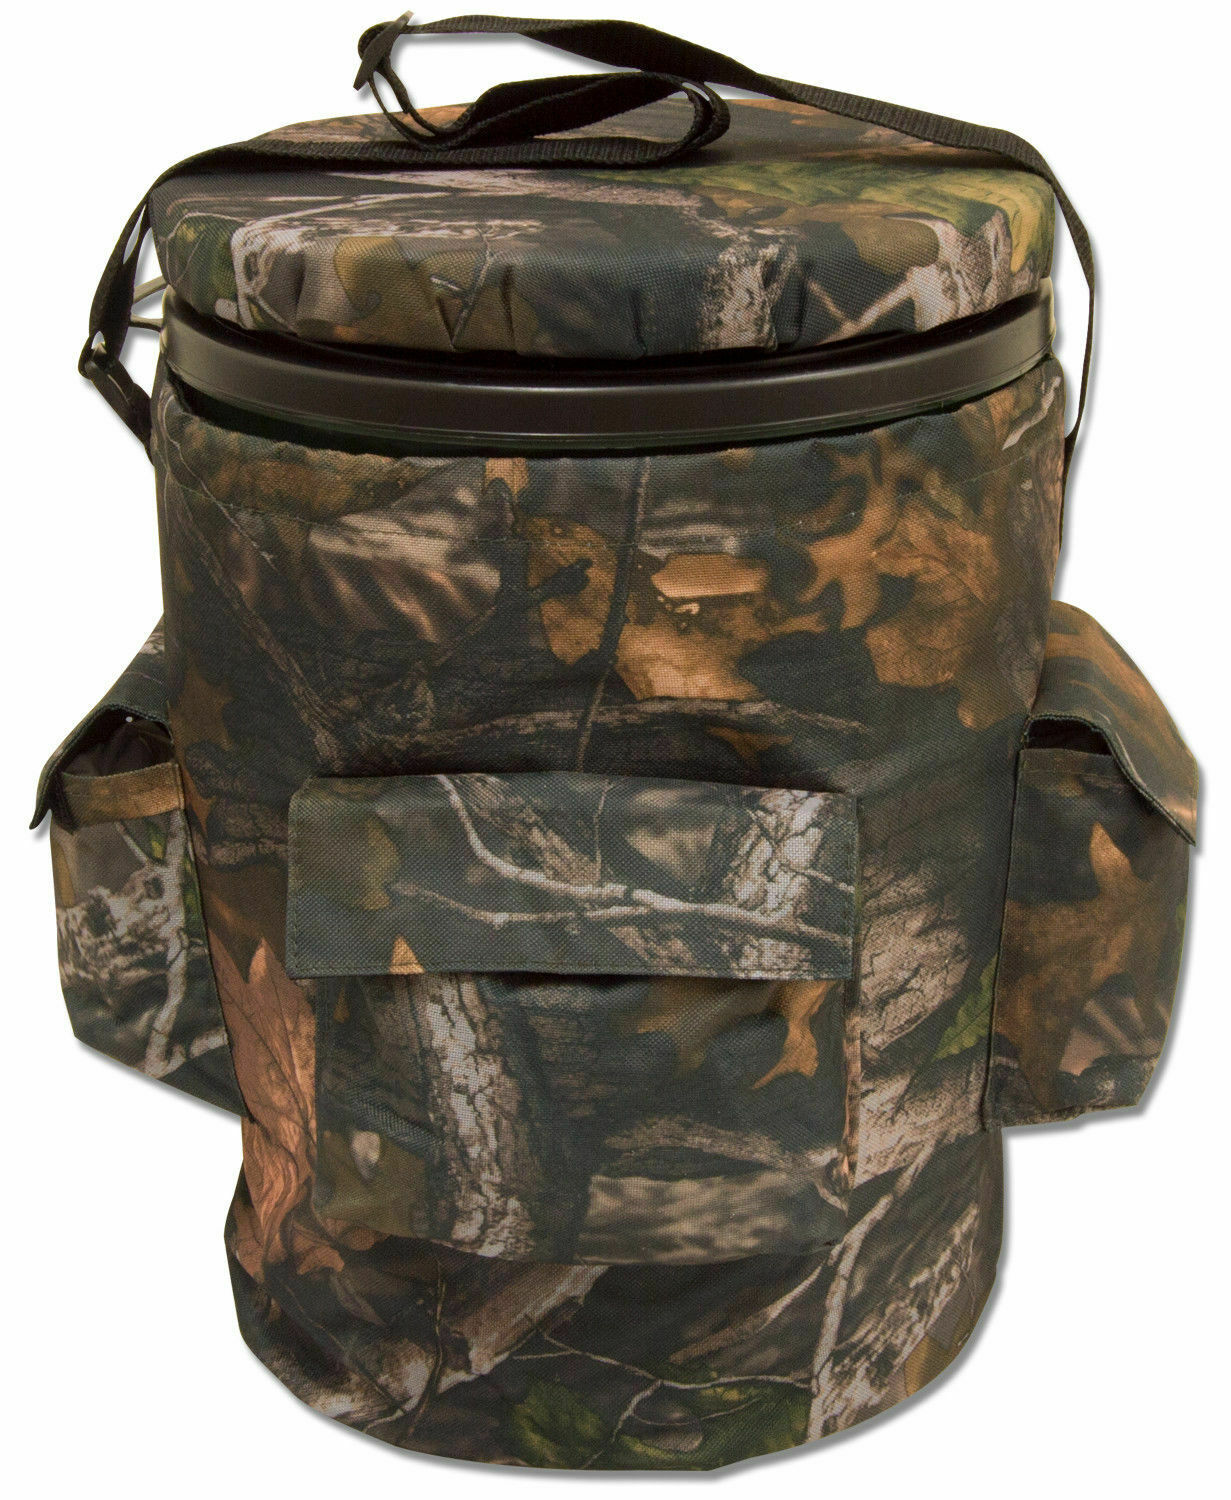 Camouflage Swivel Hunting/Fishing Bucket Seat With Storage Bag